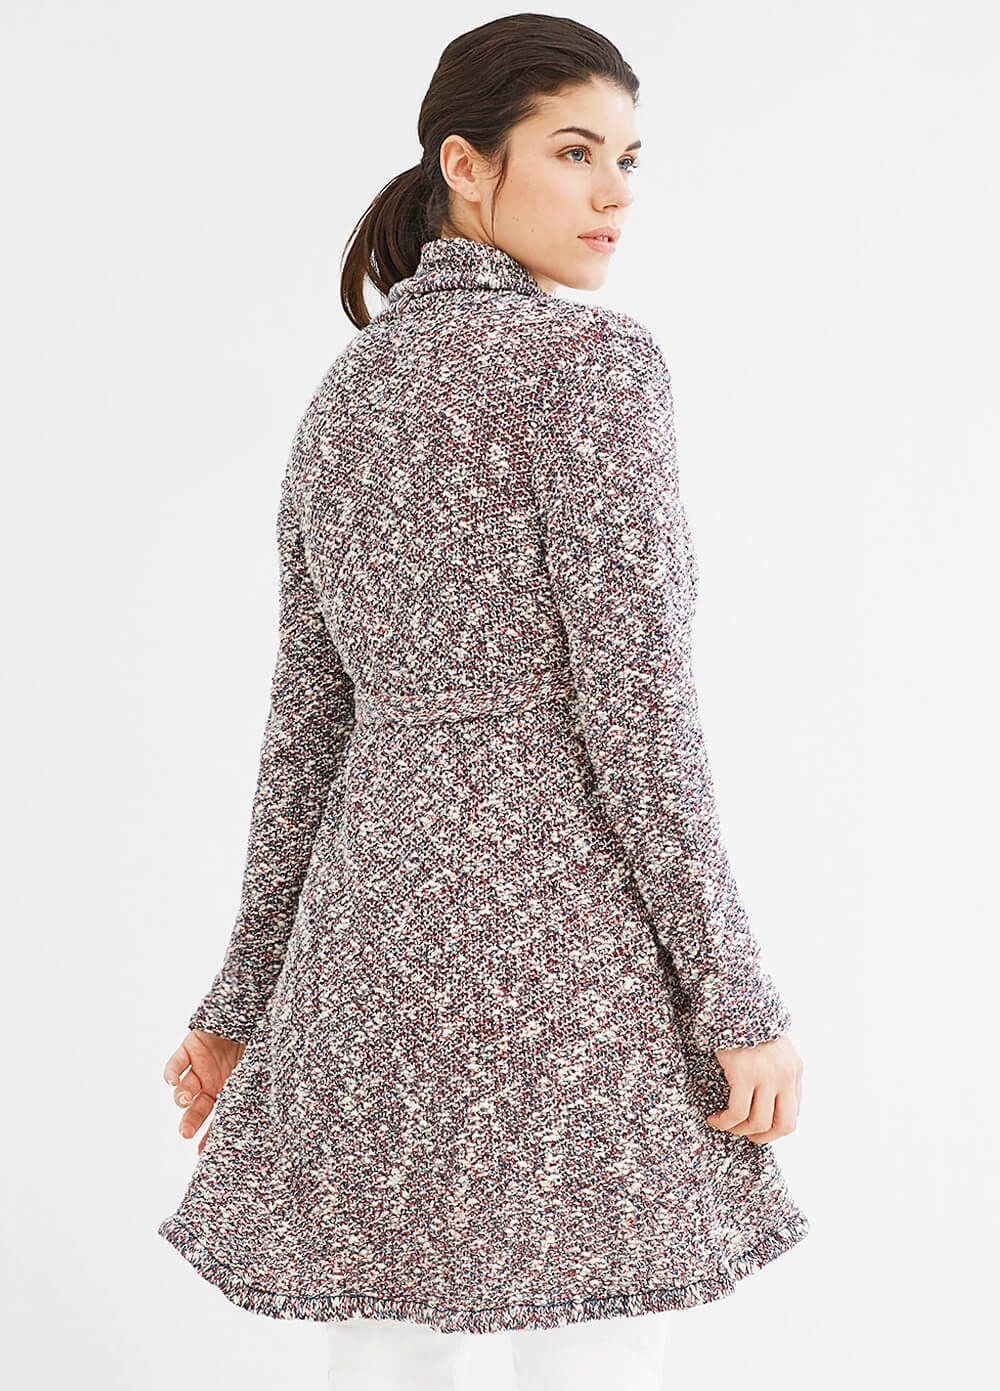 Natural Melange Maternity Knit Cardigan by Esprit